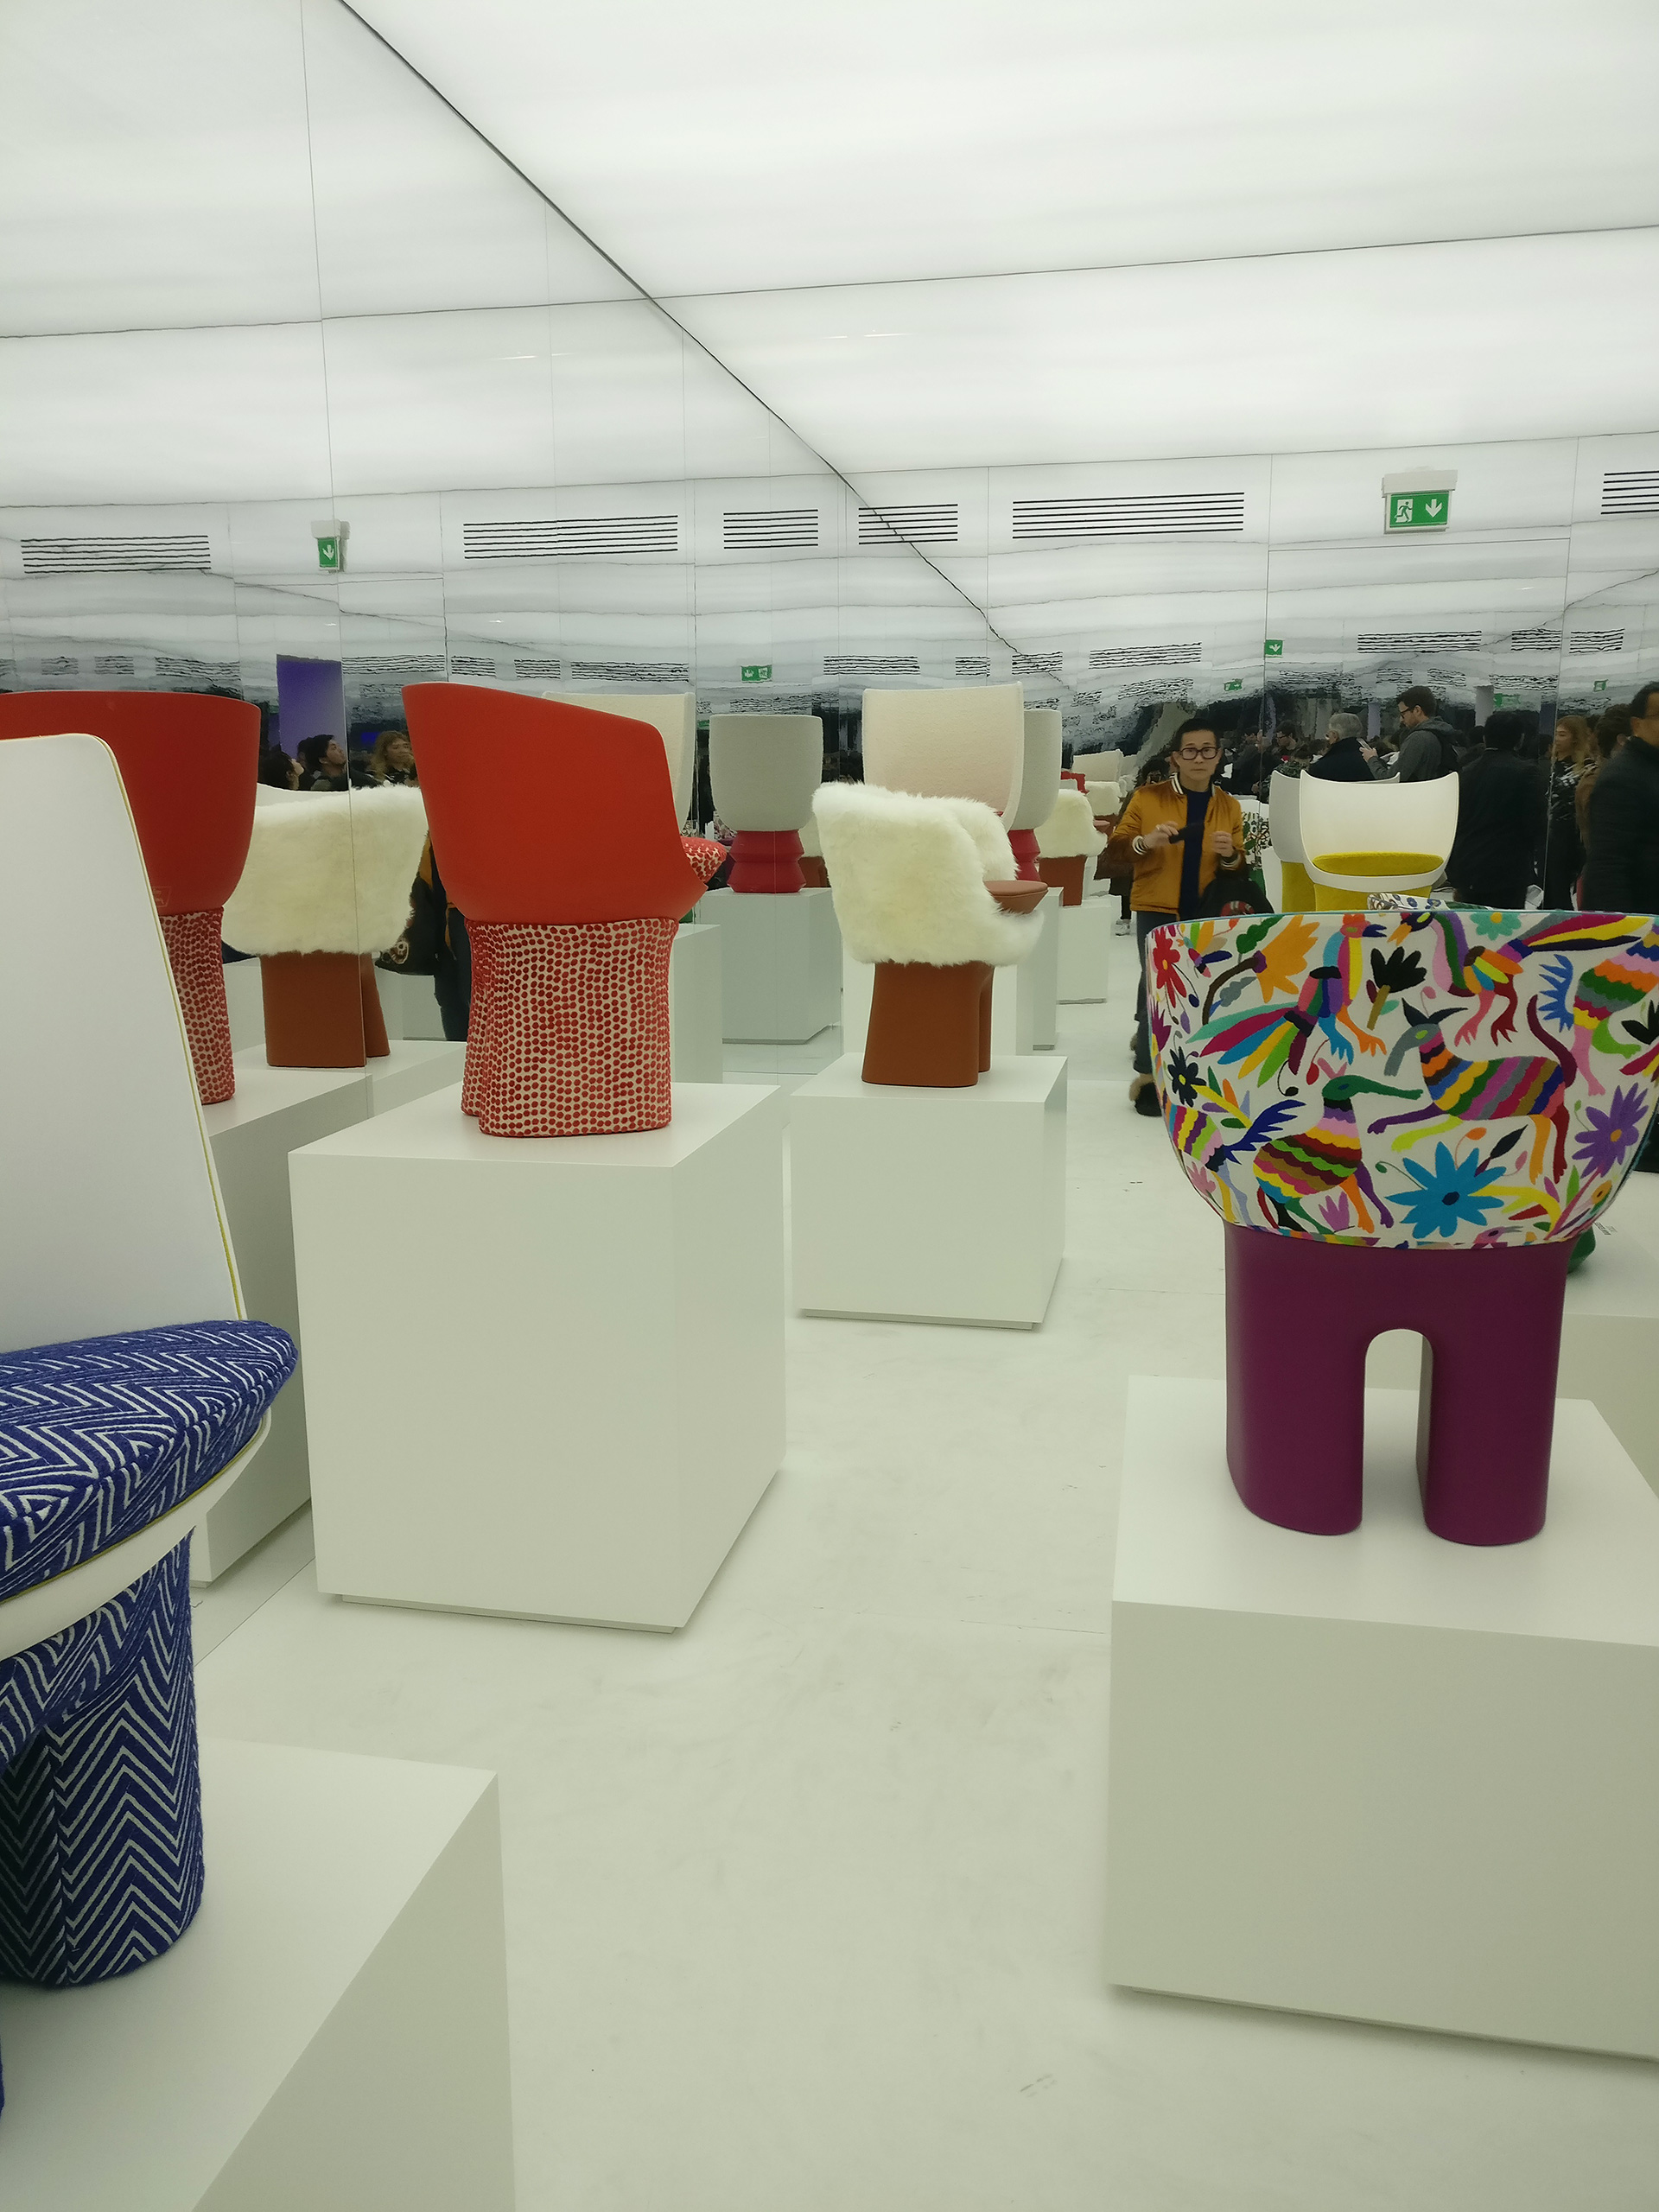 The joyous, playful 'Dolls' by Rae Edges| Louis Vuitton| Objets Nomades | Fuorisalone 2019| STIR